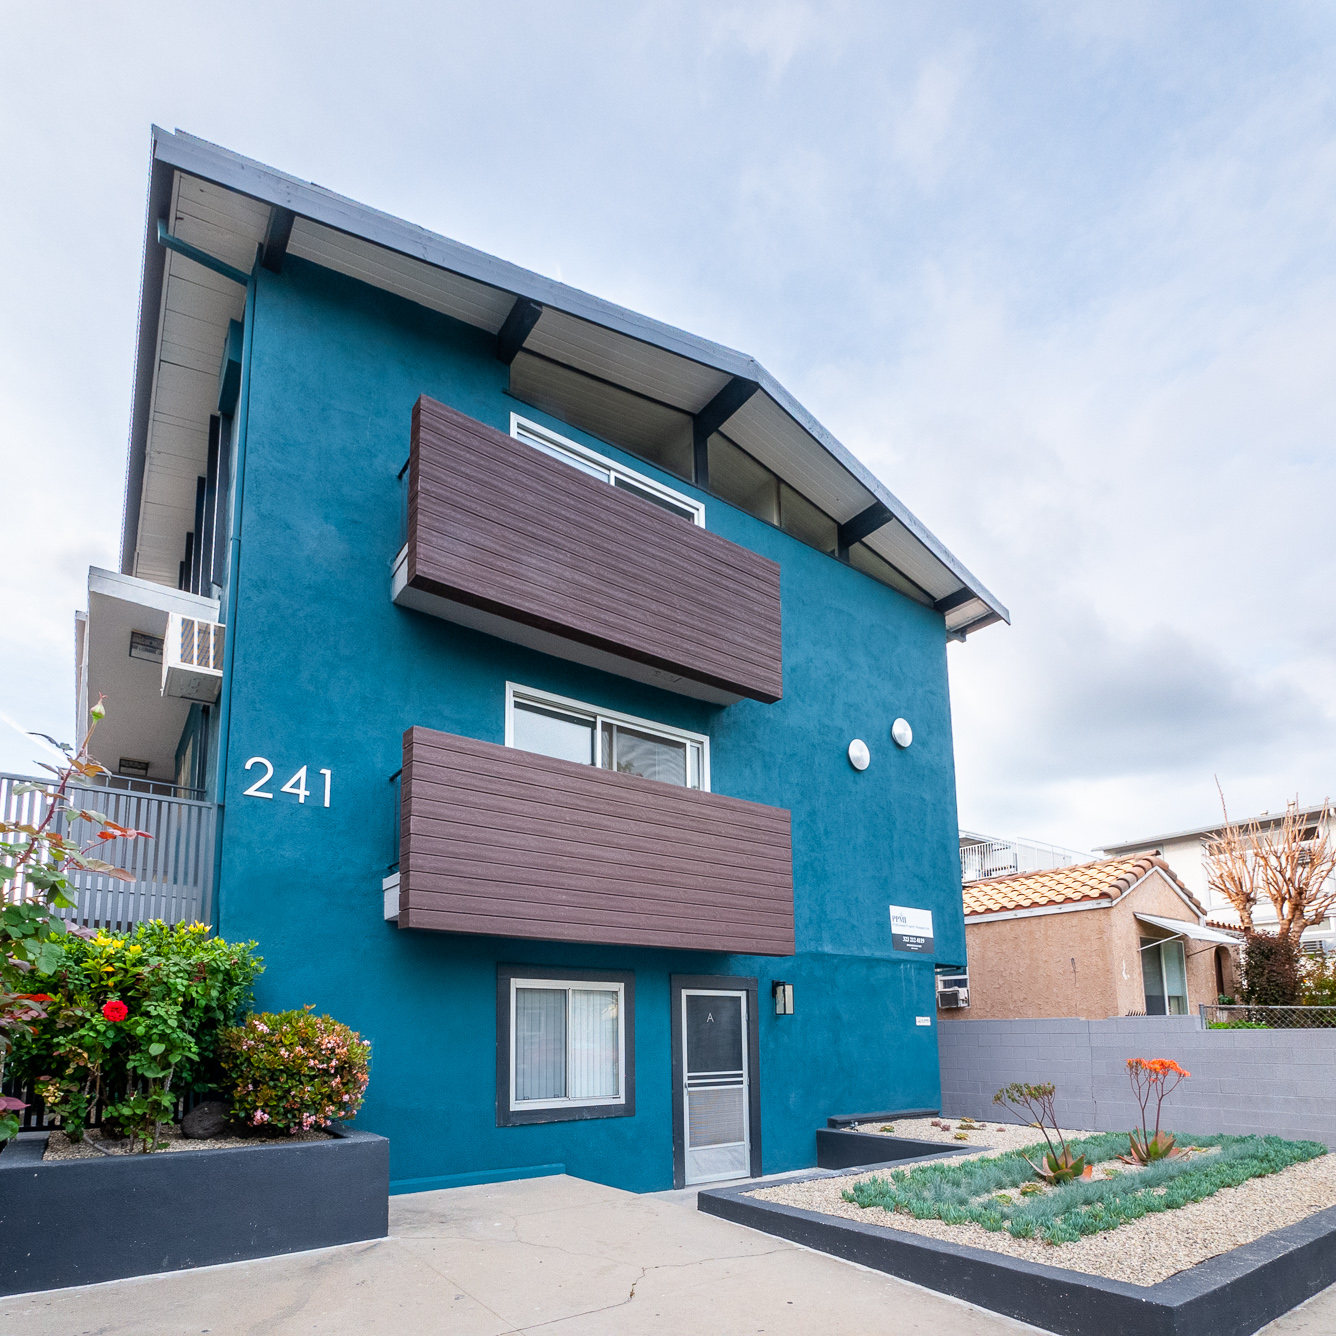 Fully Renovated 2Bed/2Bath Unit! Close to Downtown Burbank!